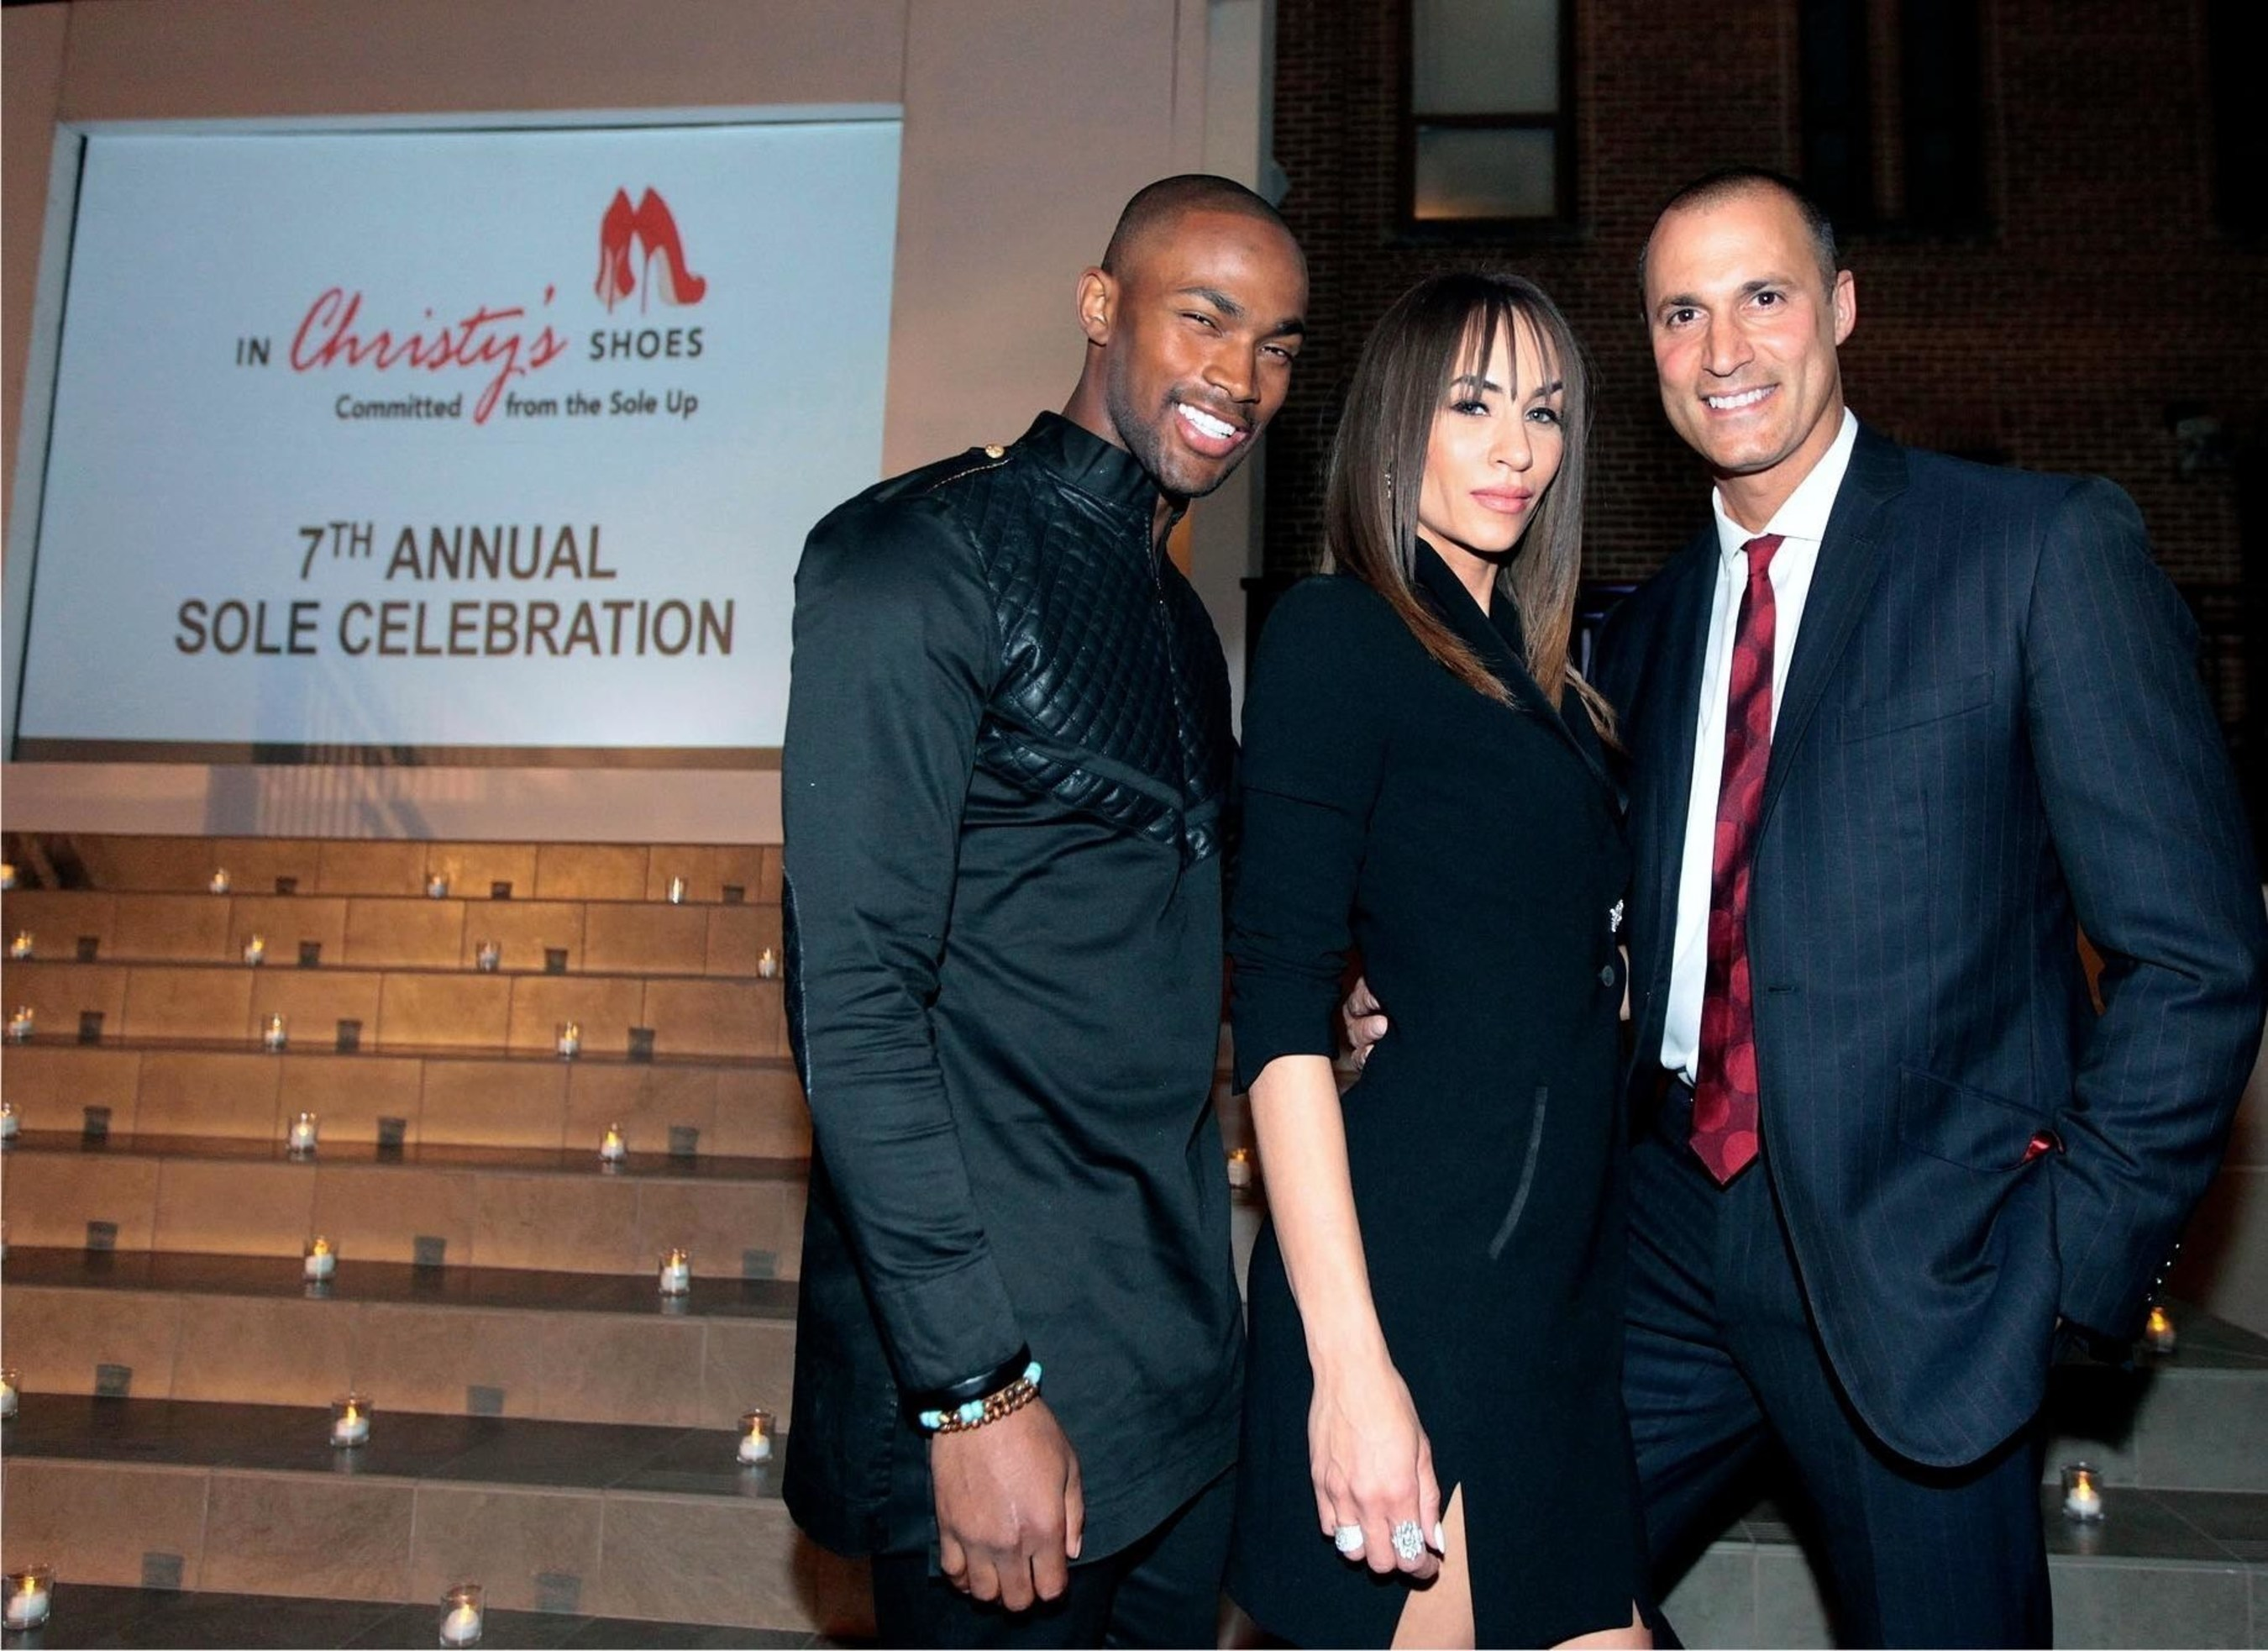 America's Next Top Model Alums Unite to Support Great Cause